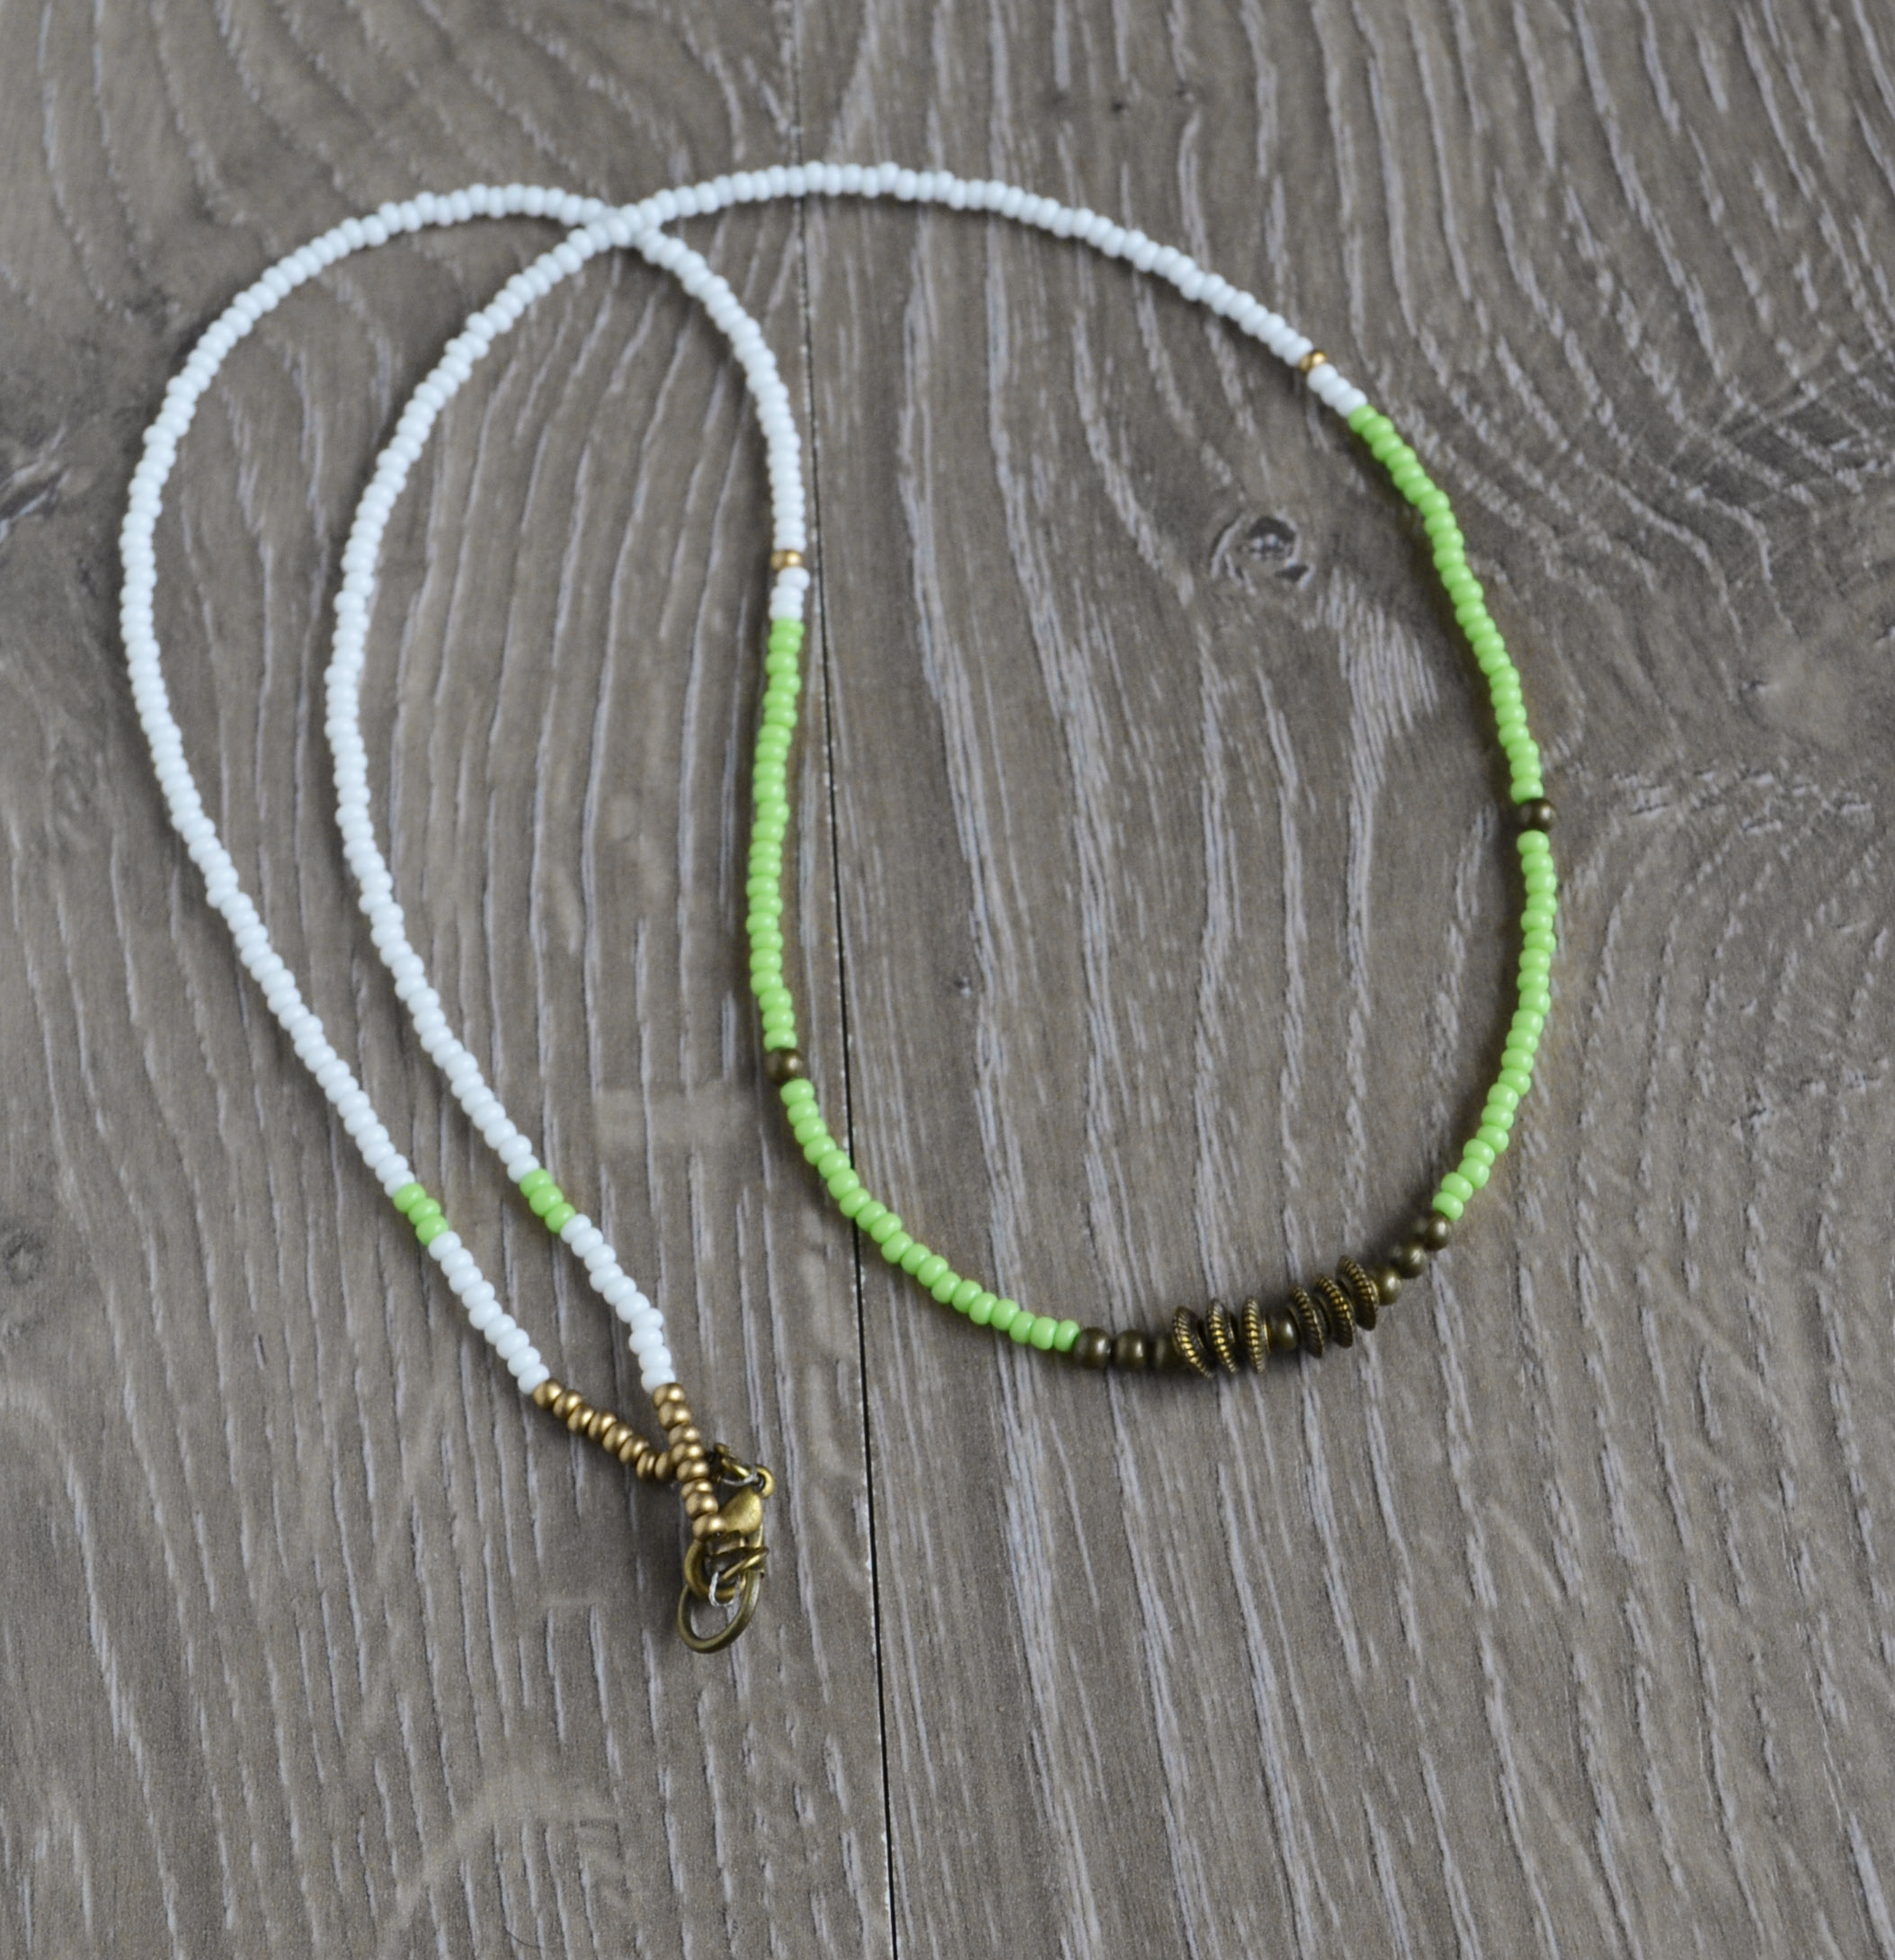 beaded necklace kiwi green necklace seed bead